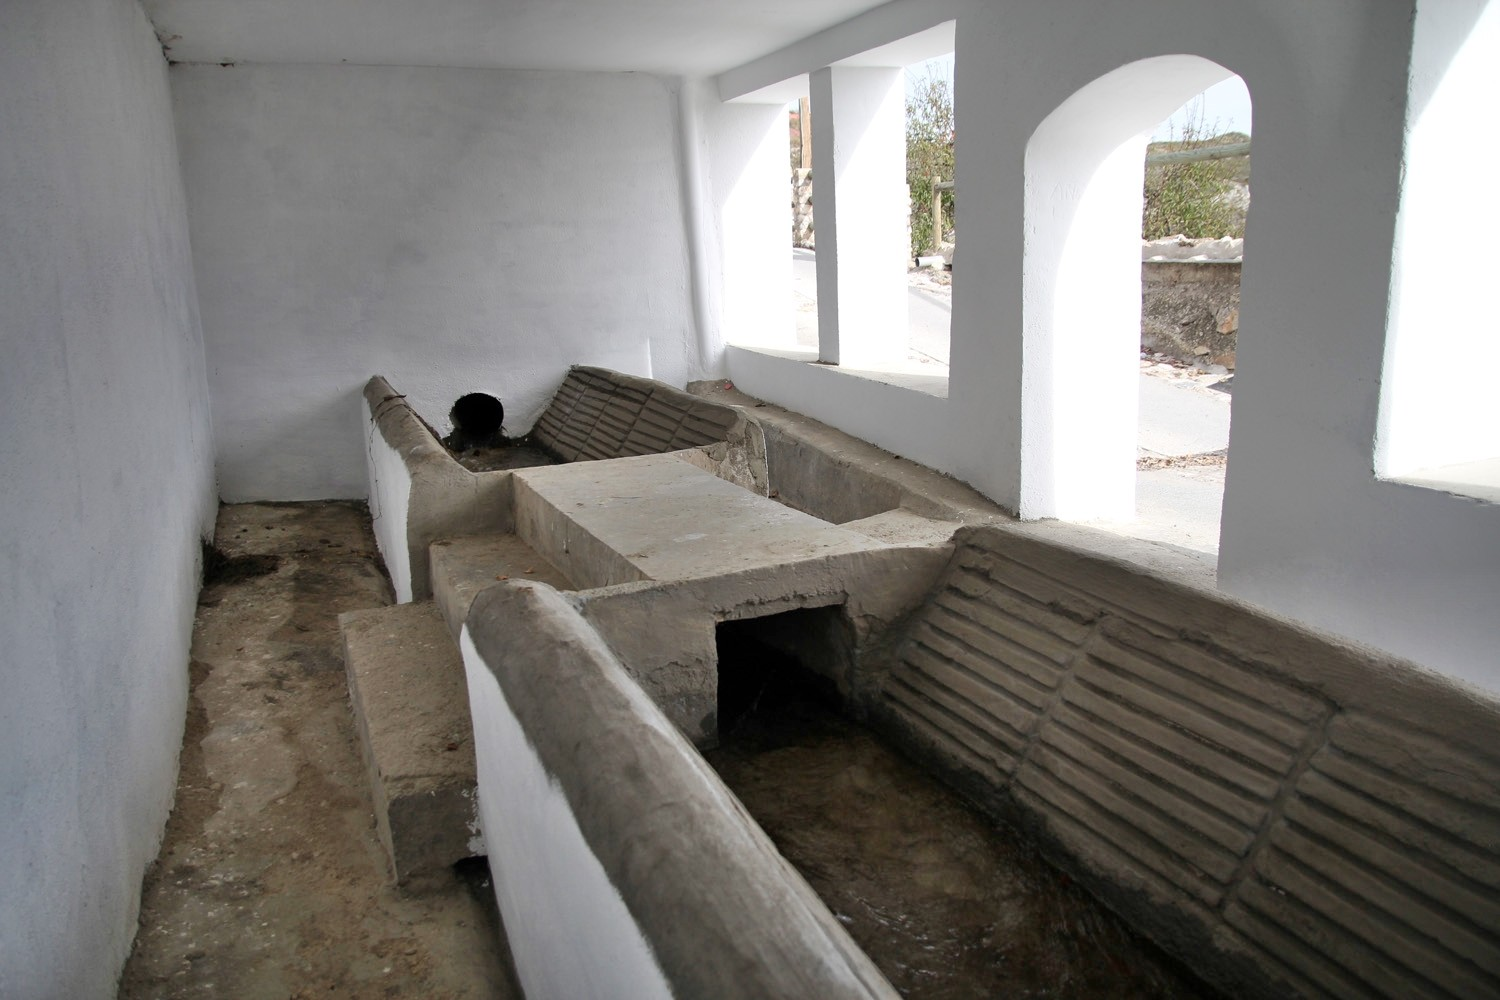 The Washing Sinks in Timar